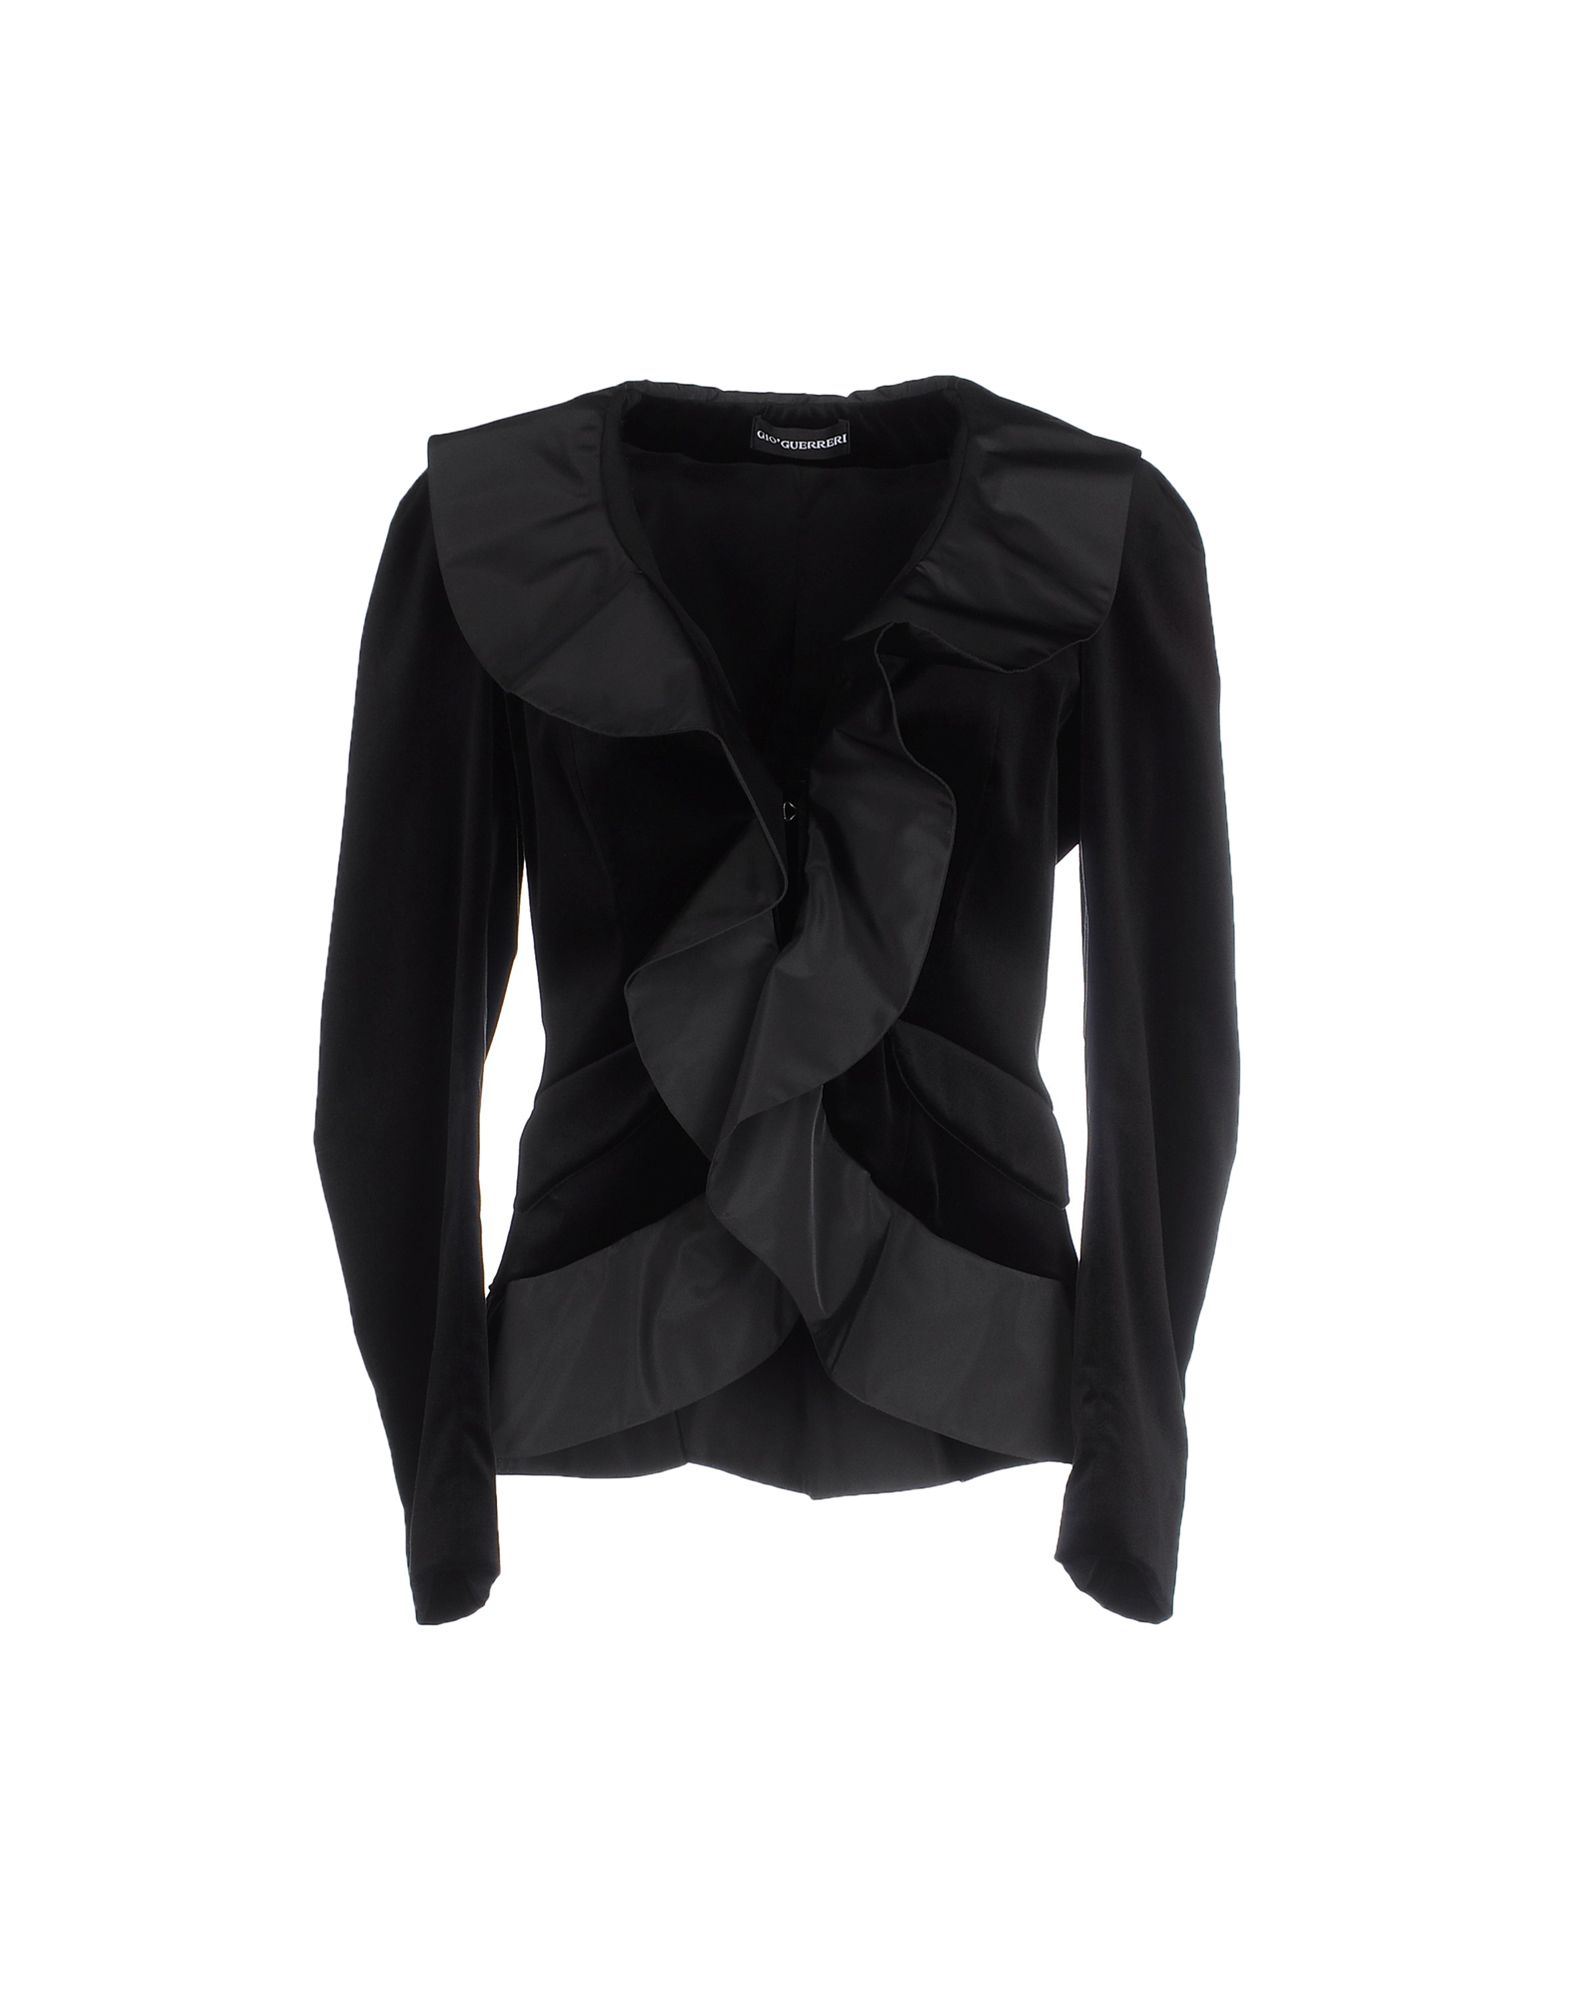 GIO' GUERRERI Blazer in Black